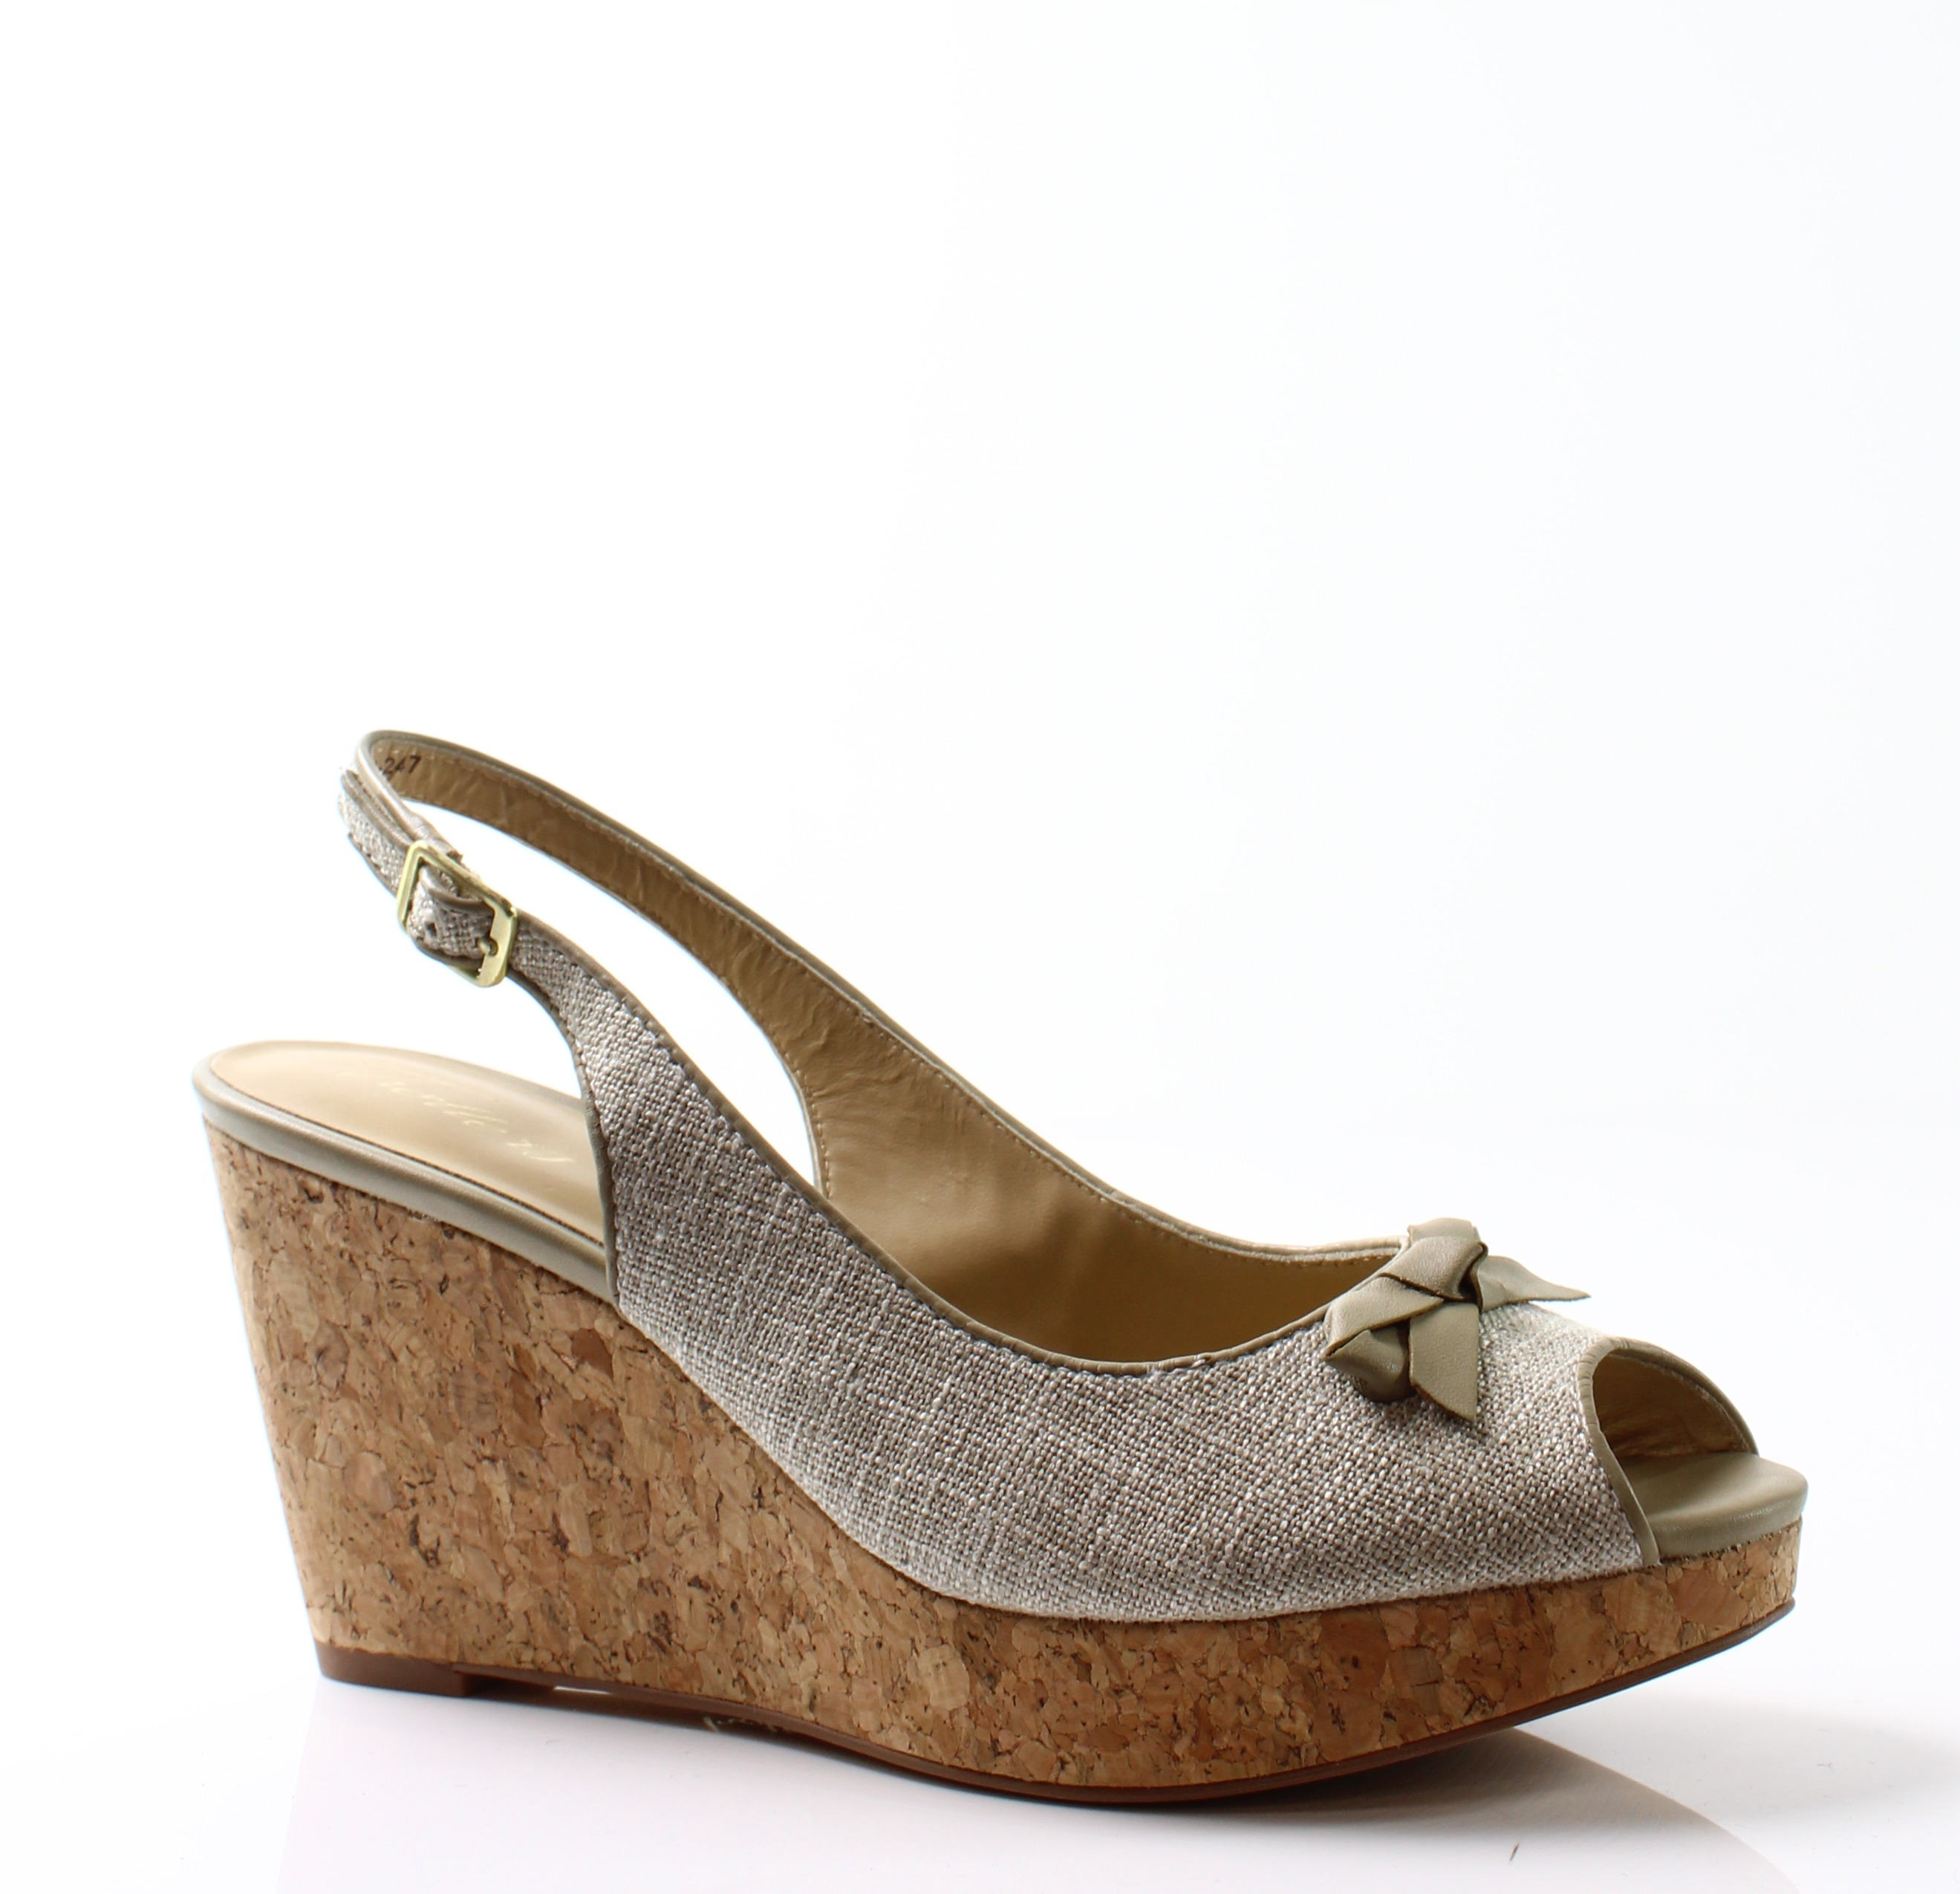 Trotters New Beige Allie Shoes Size 8.5N Slingbacks Sandals by Trotters